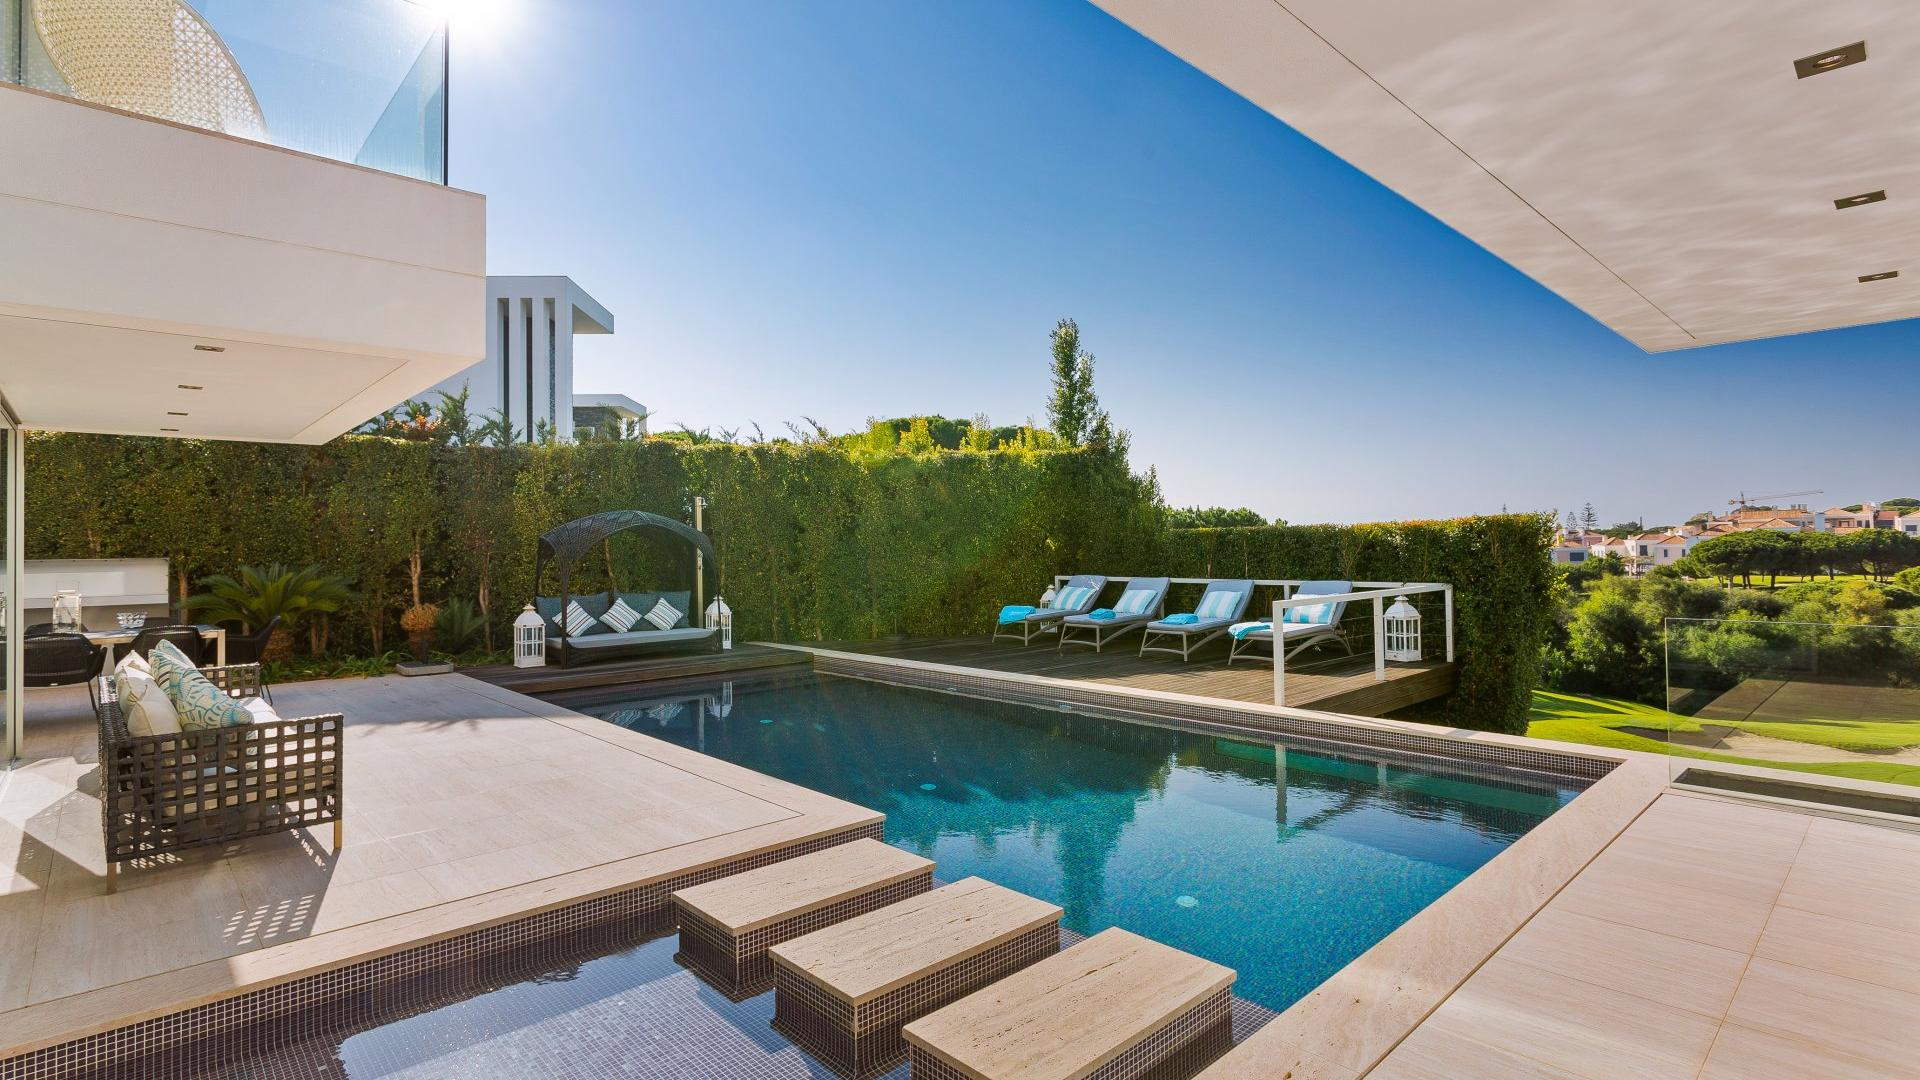 Luxury Villas With Pool Holiday Apartments For Rent In